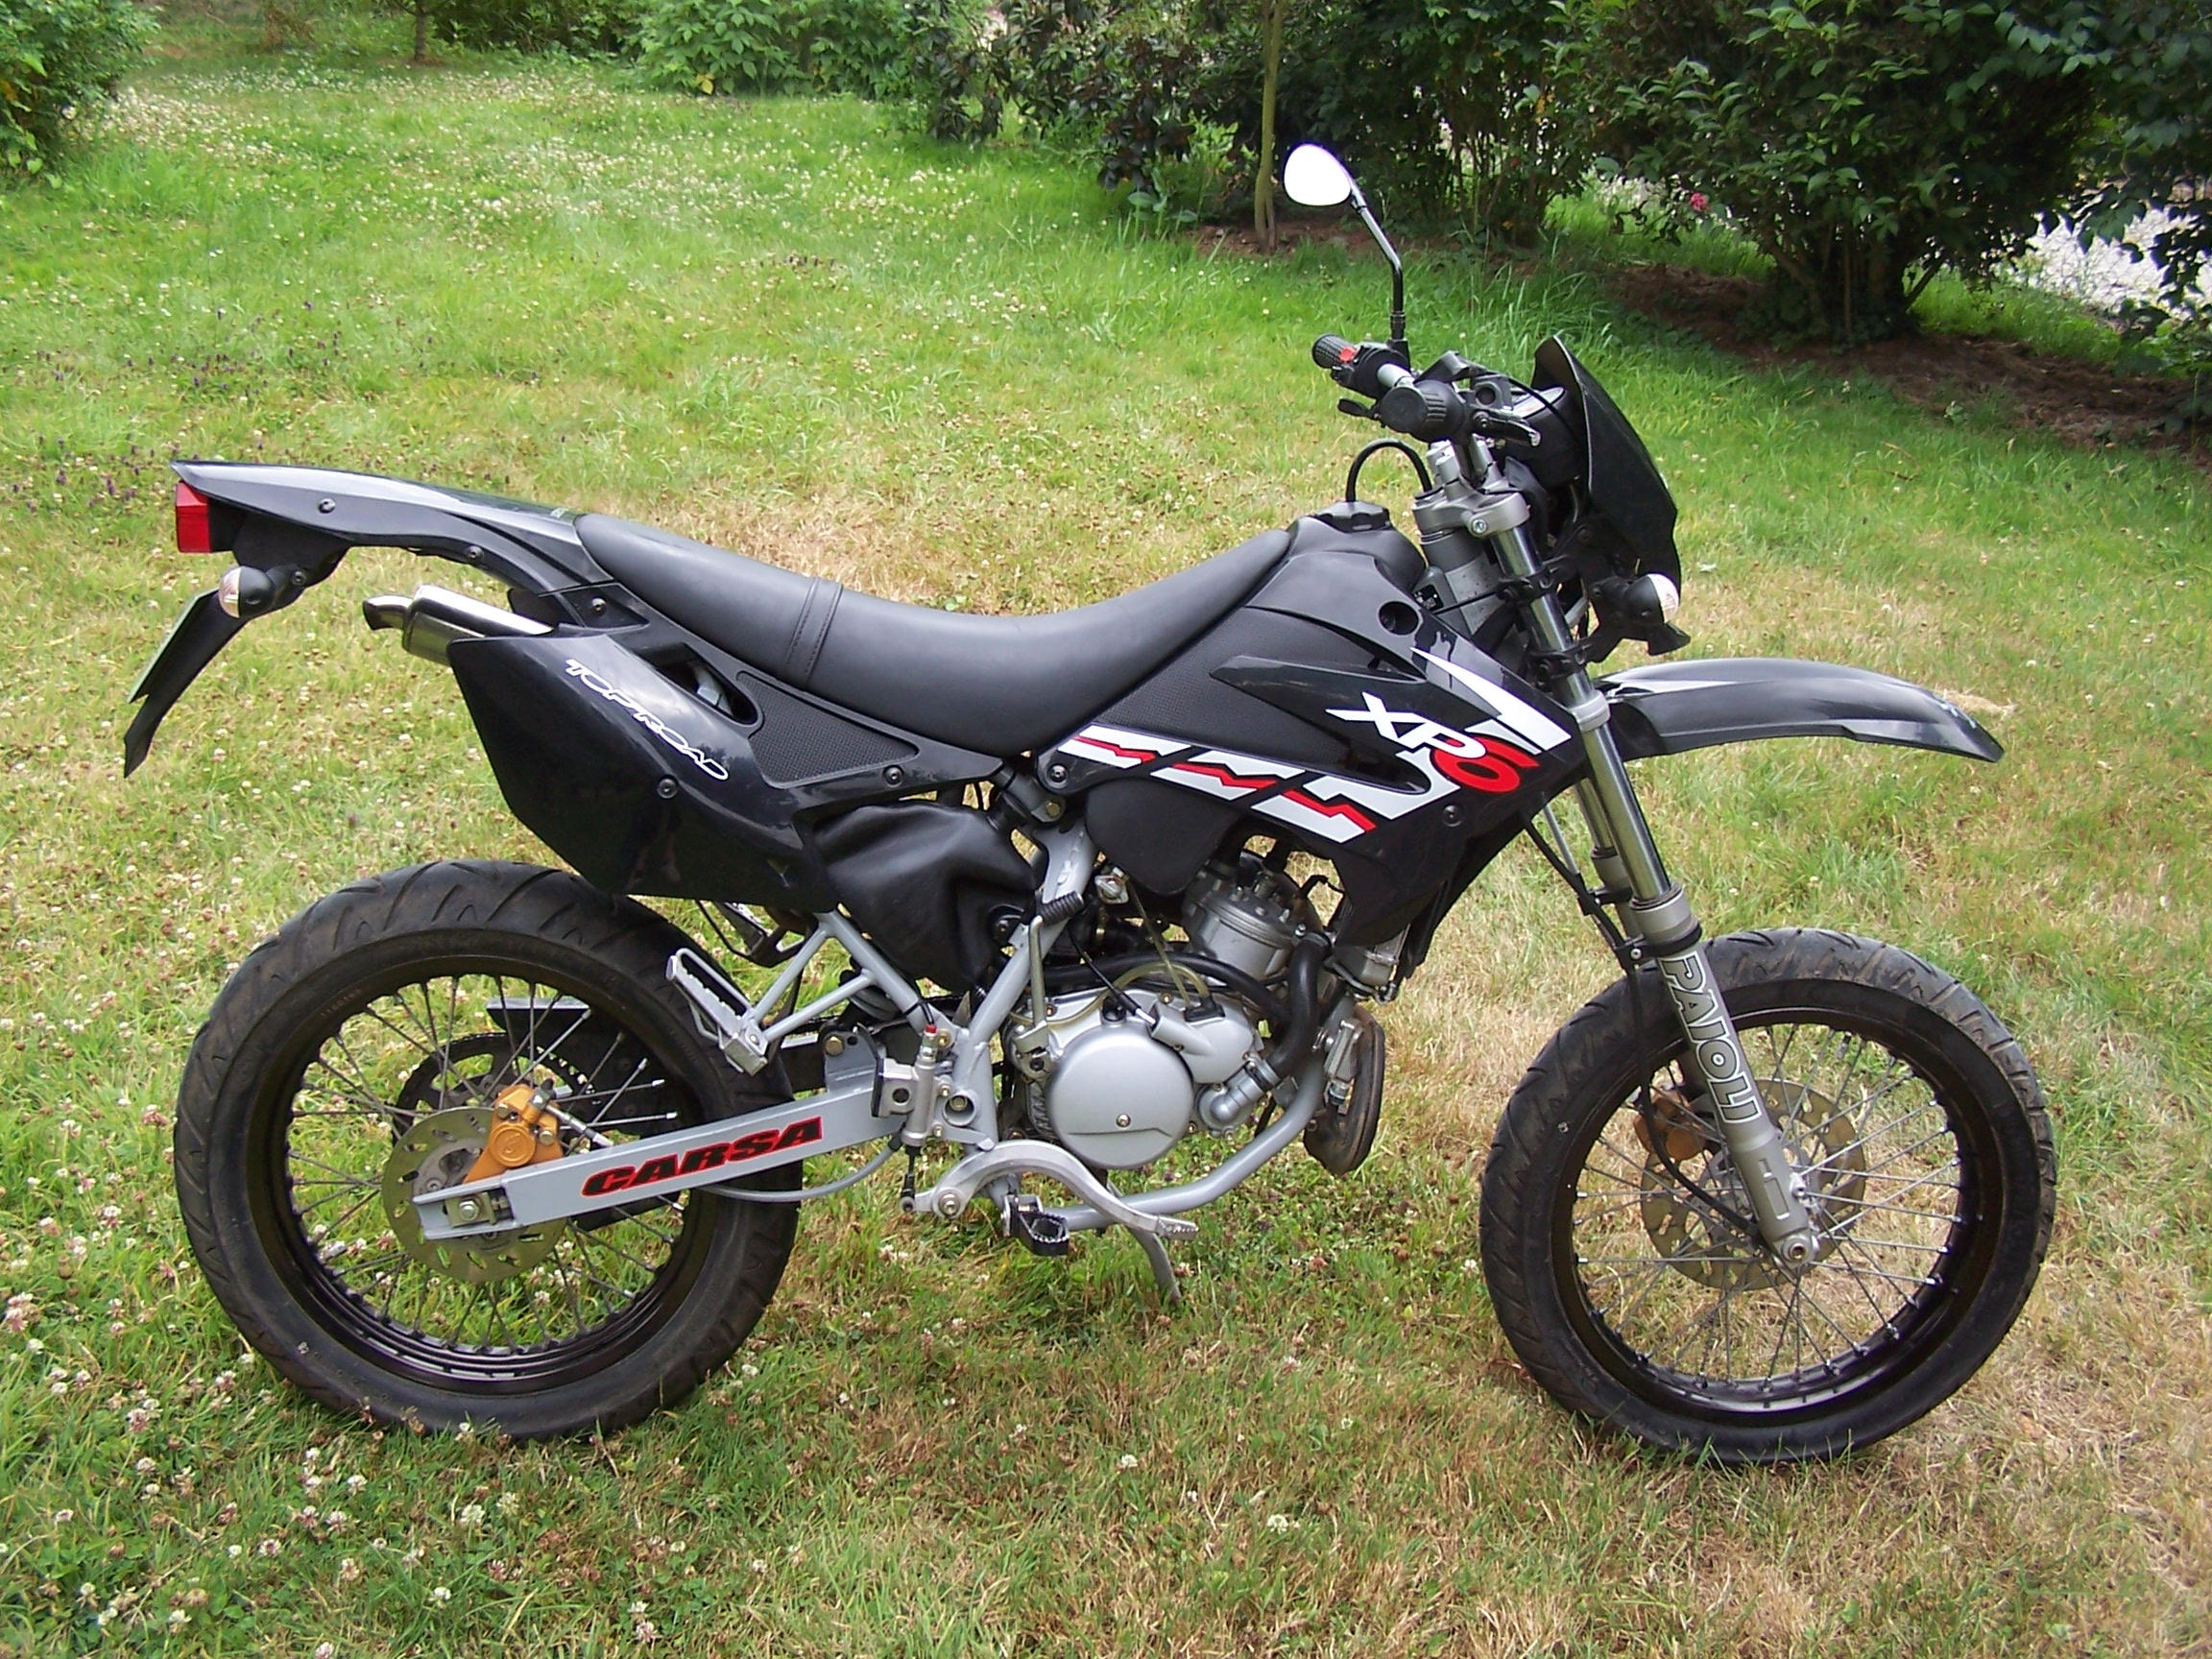 Peugeot XP 6 S Supermotard 2003 #1